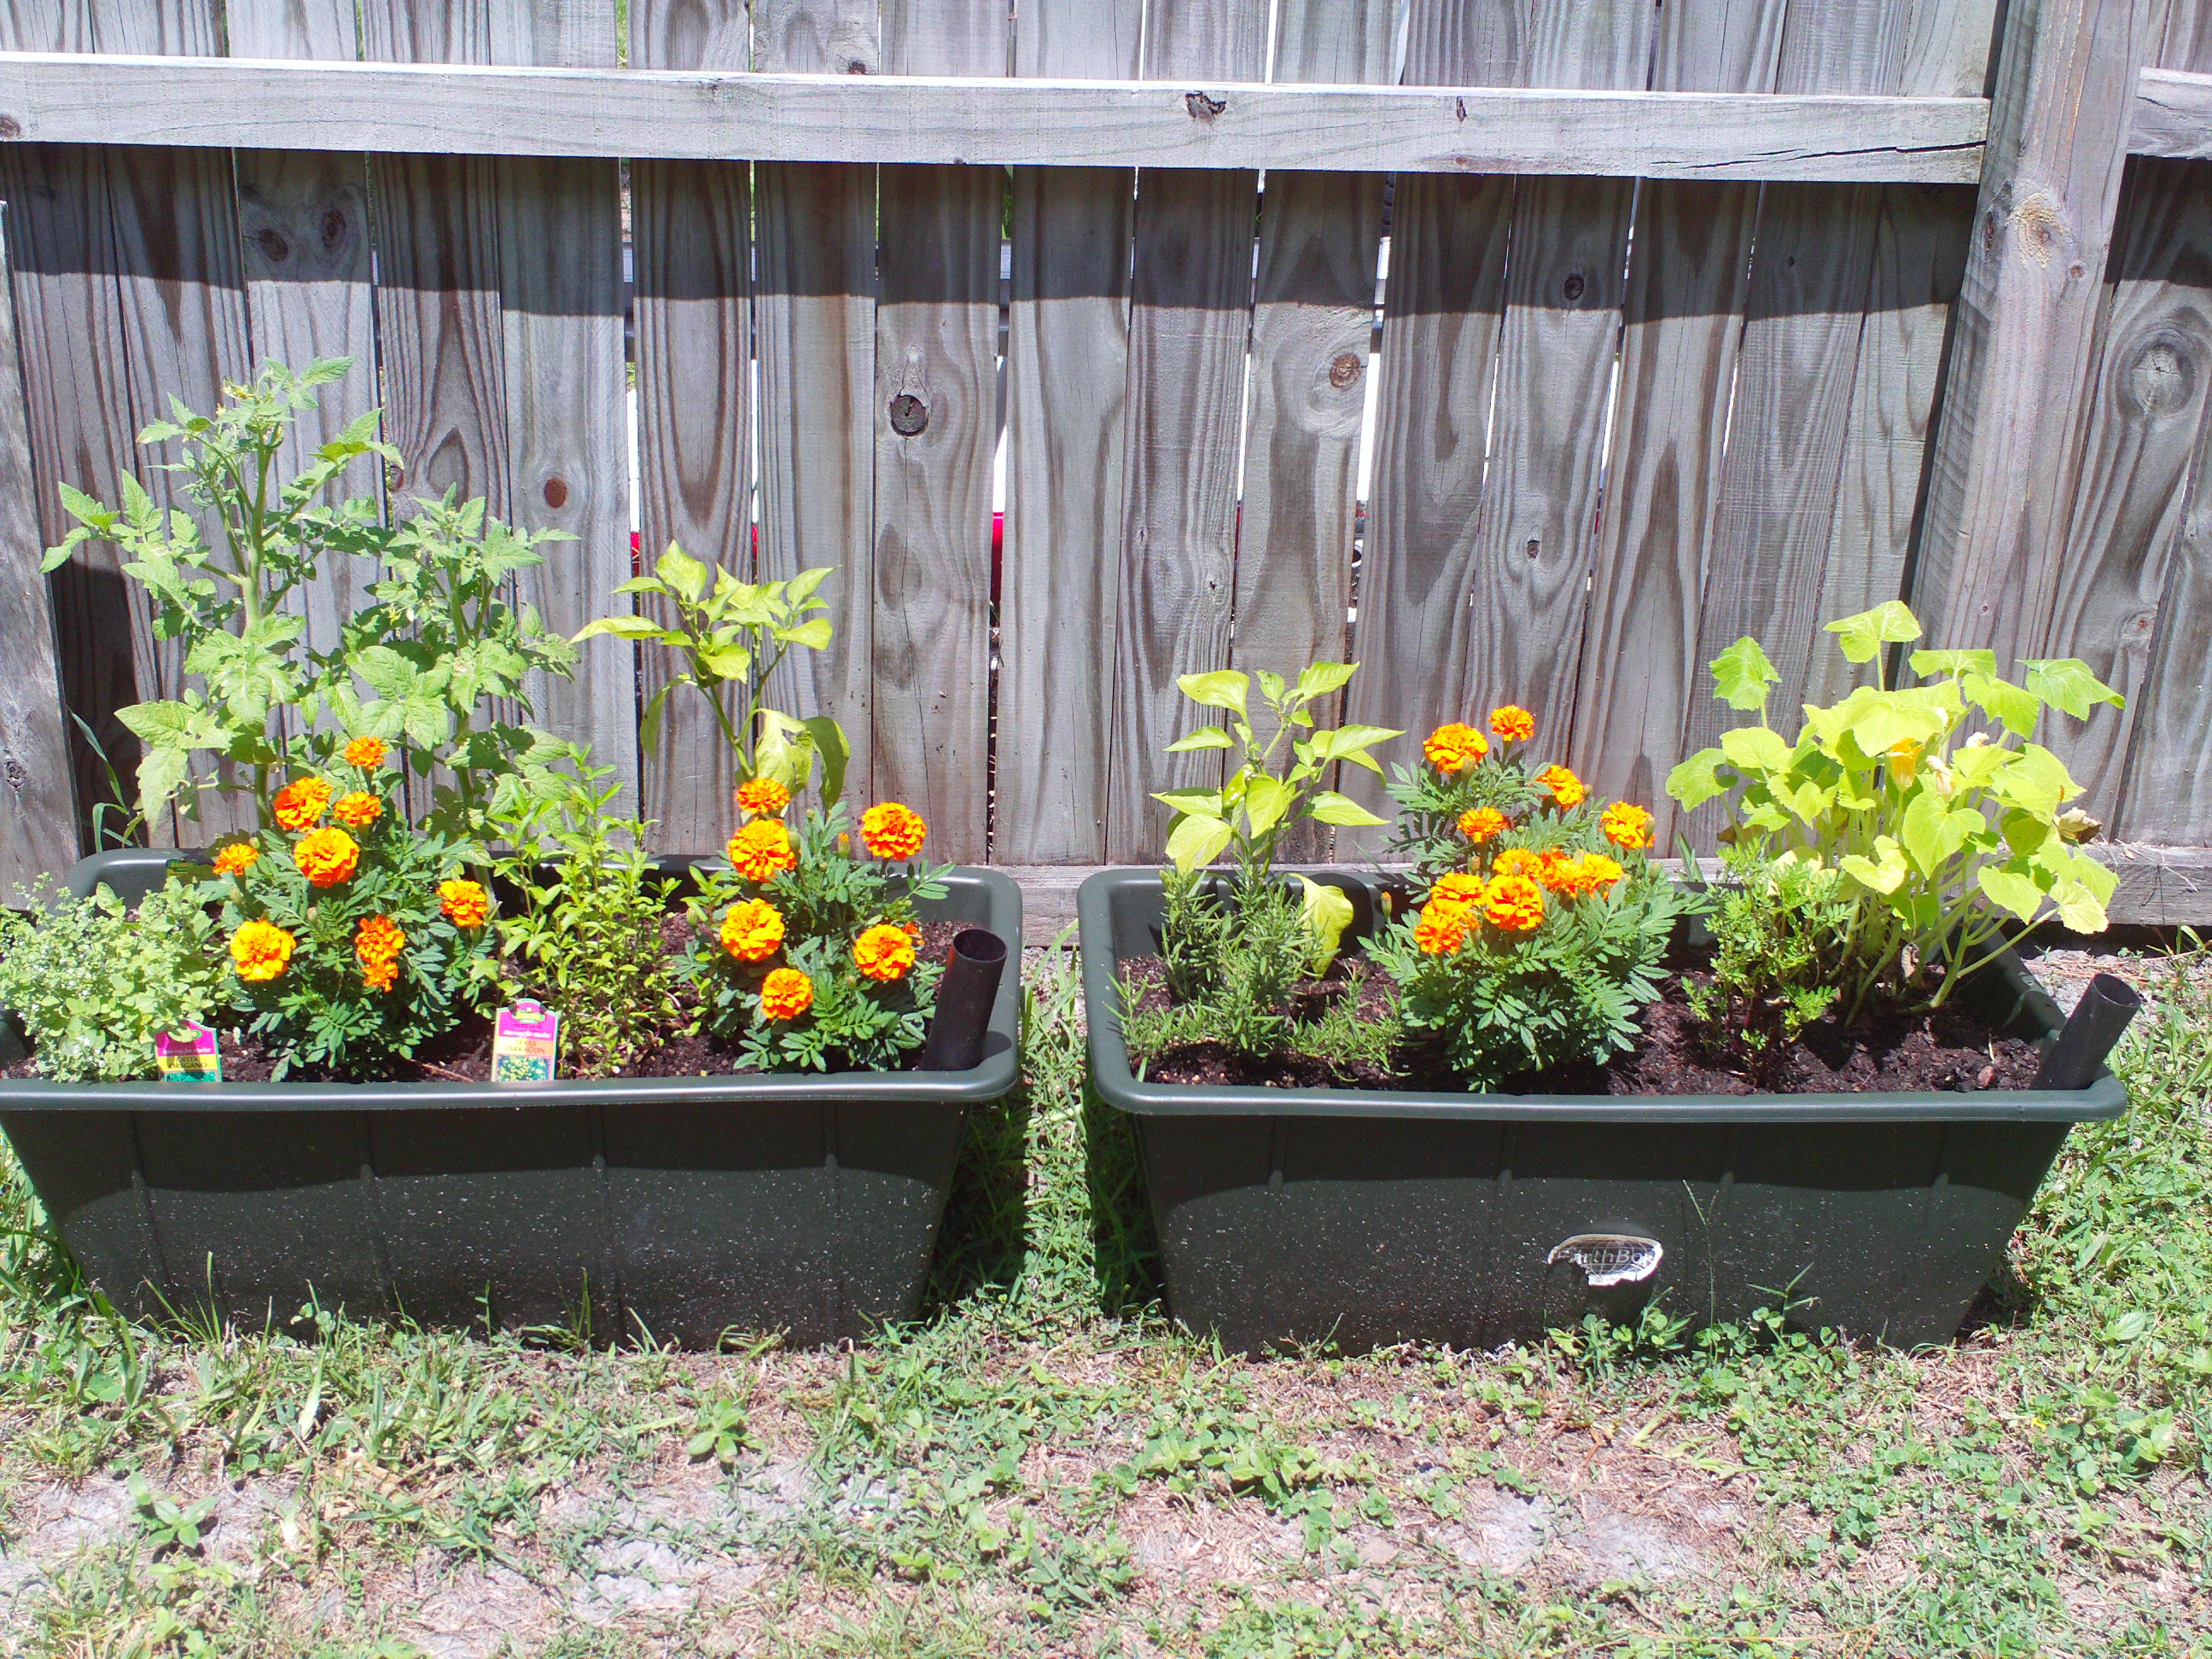 Starting a backyard vegetable garden - My Container Gardens Are Growing Cherry Tomatoes Mini Bell Peppers